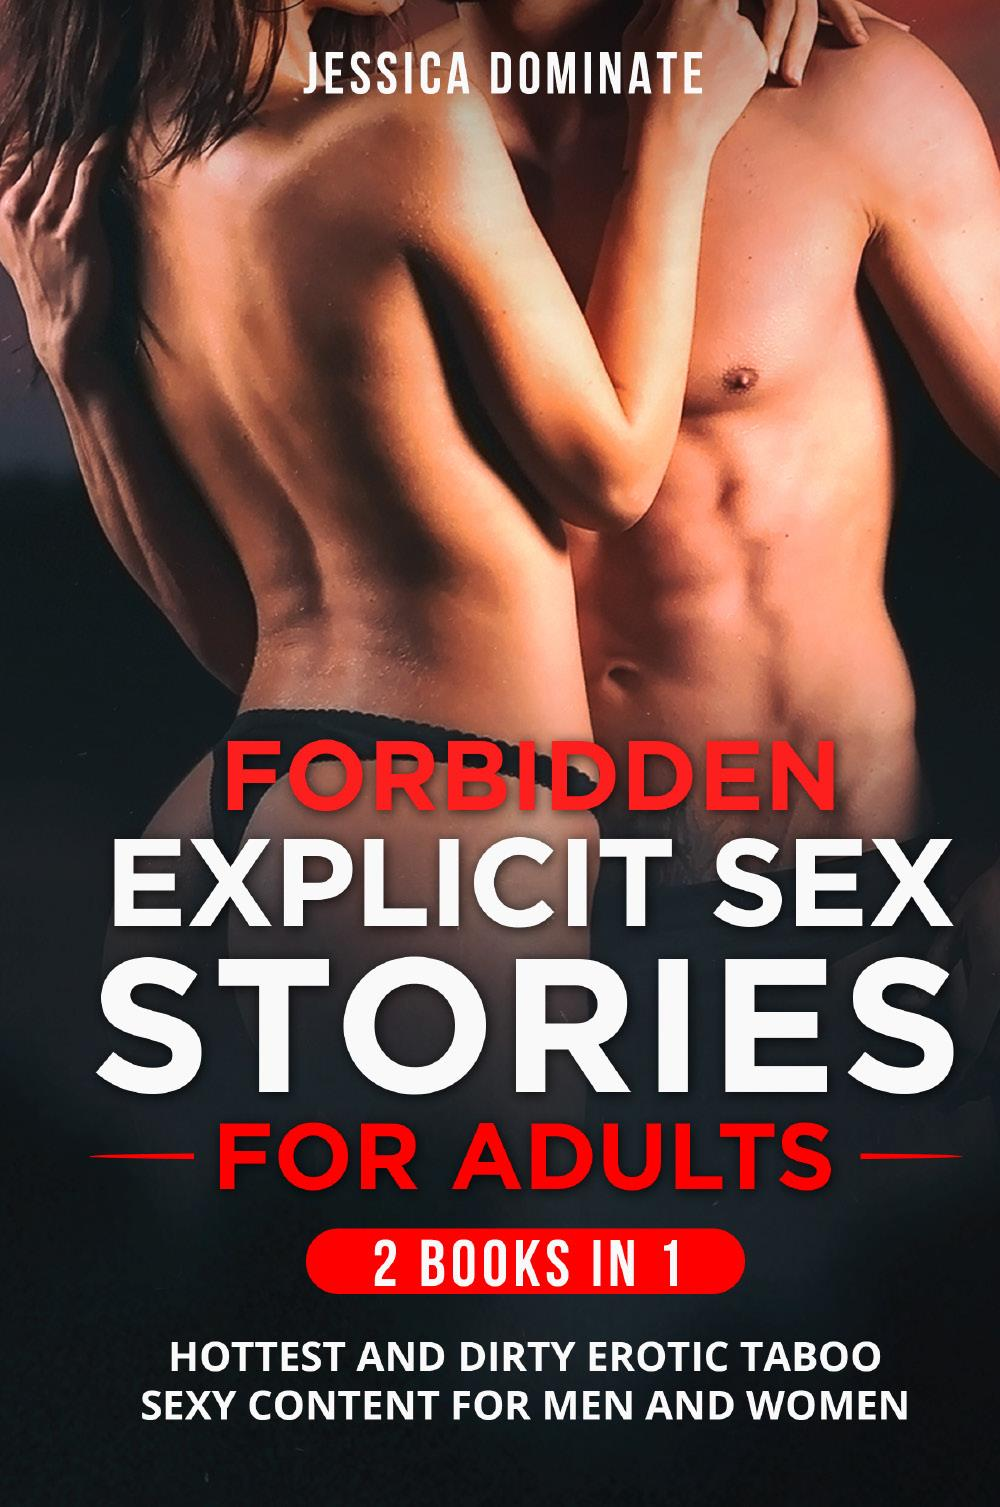 Forbidden Explicit Sex Stories For Adults (2 Books in 1)